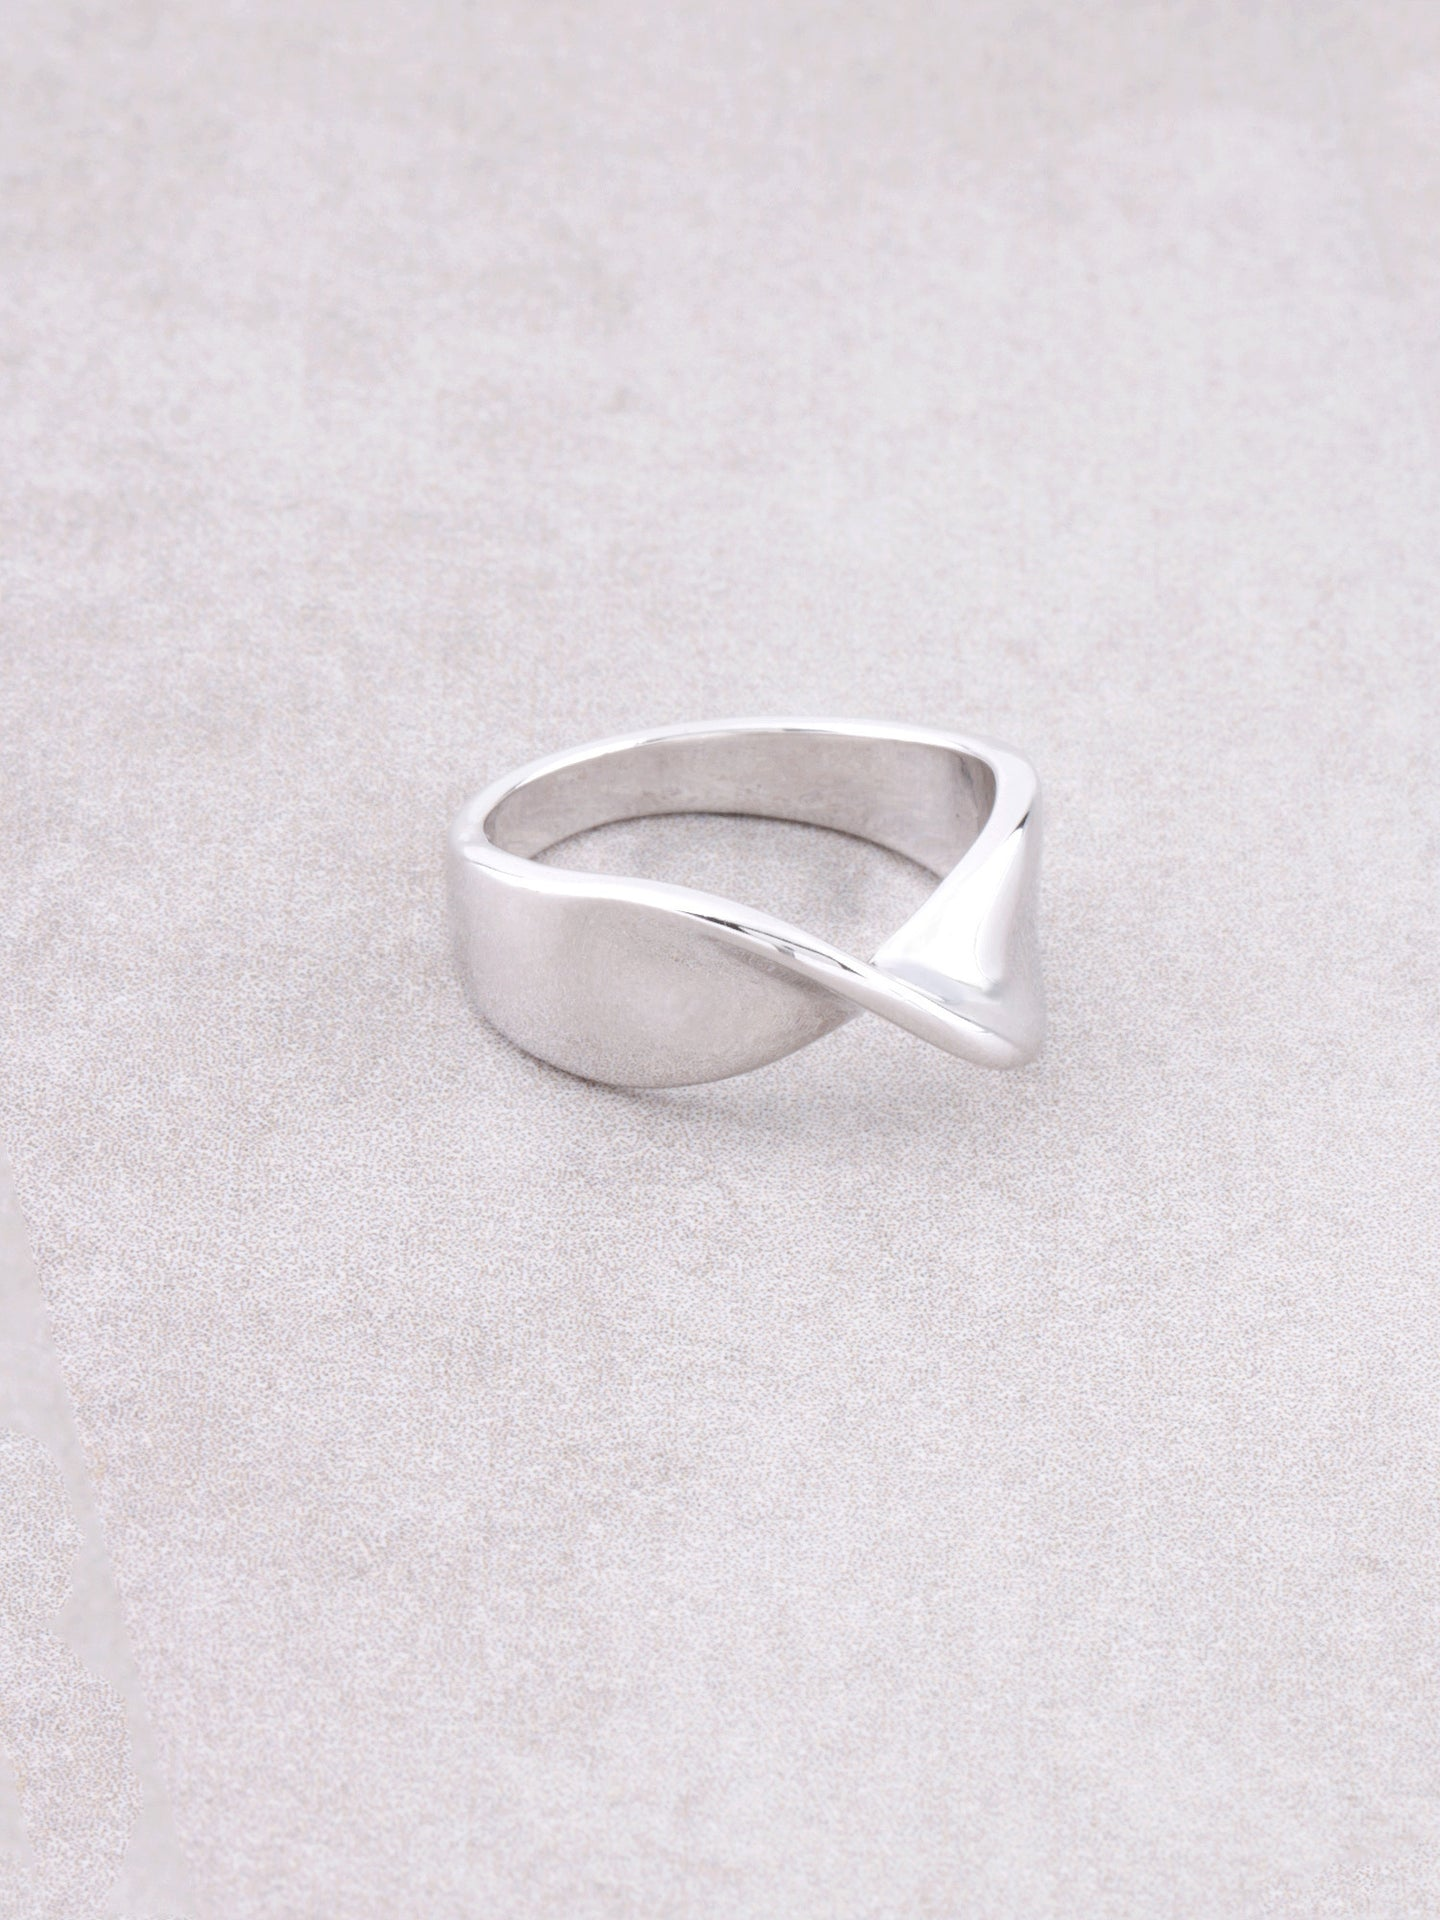 Turn Over Ring Anarchy Street Silver